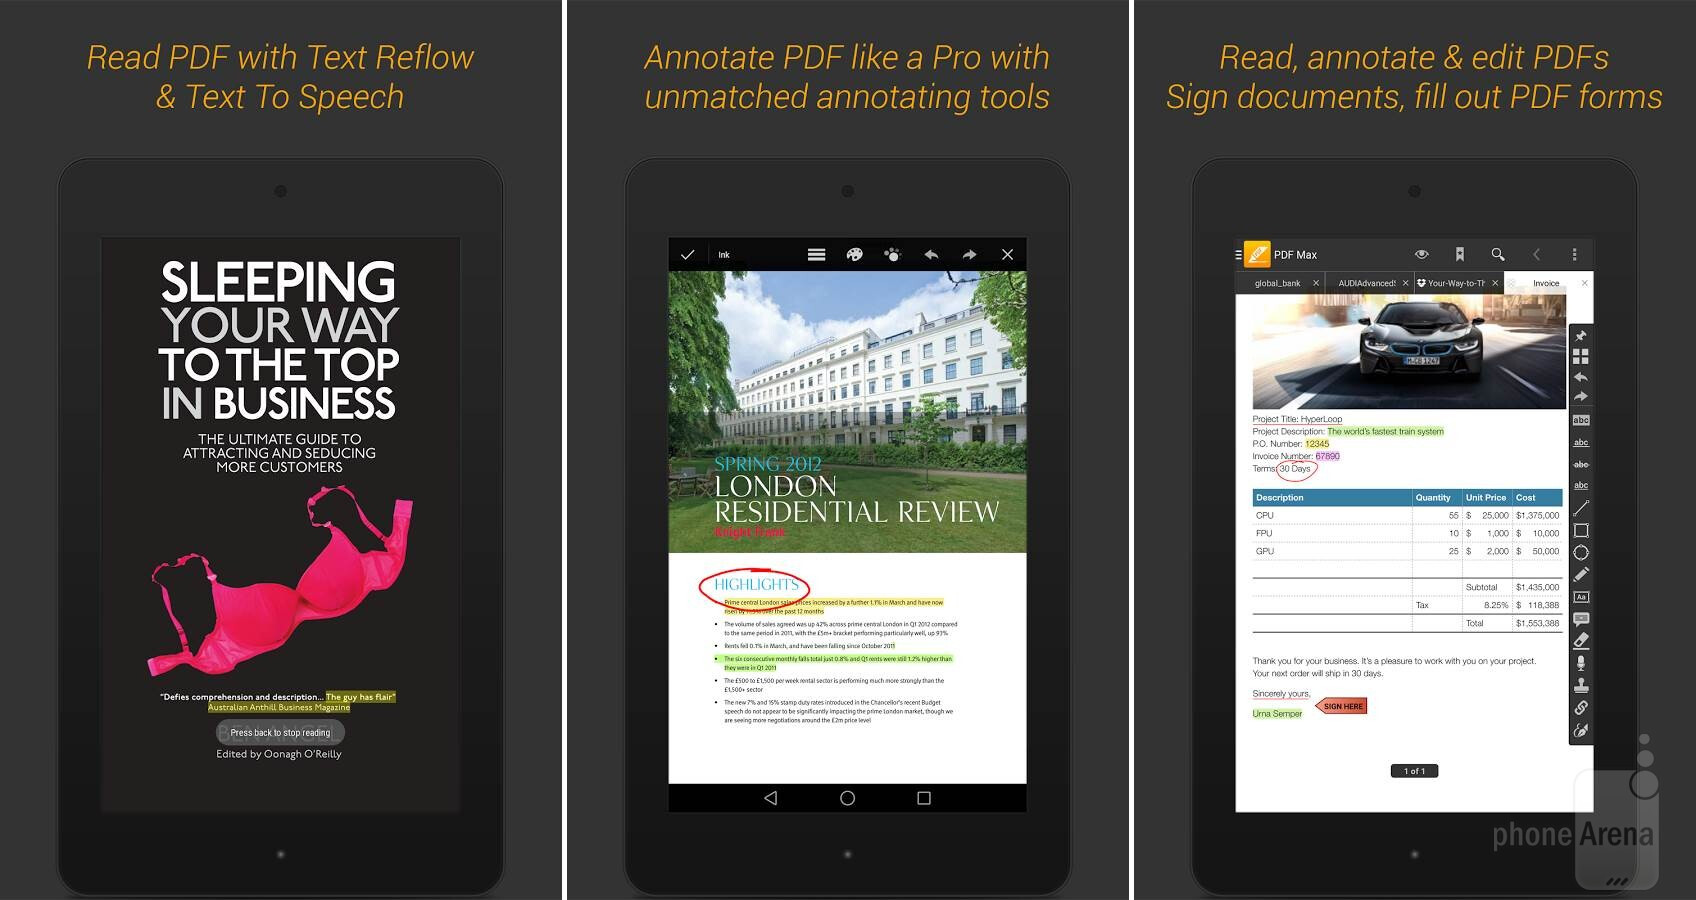 pdf file download app for android